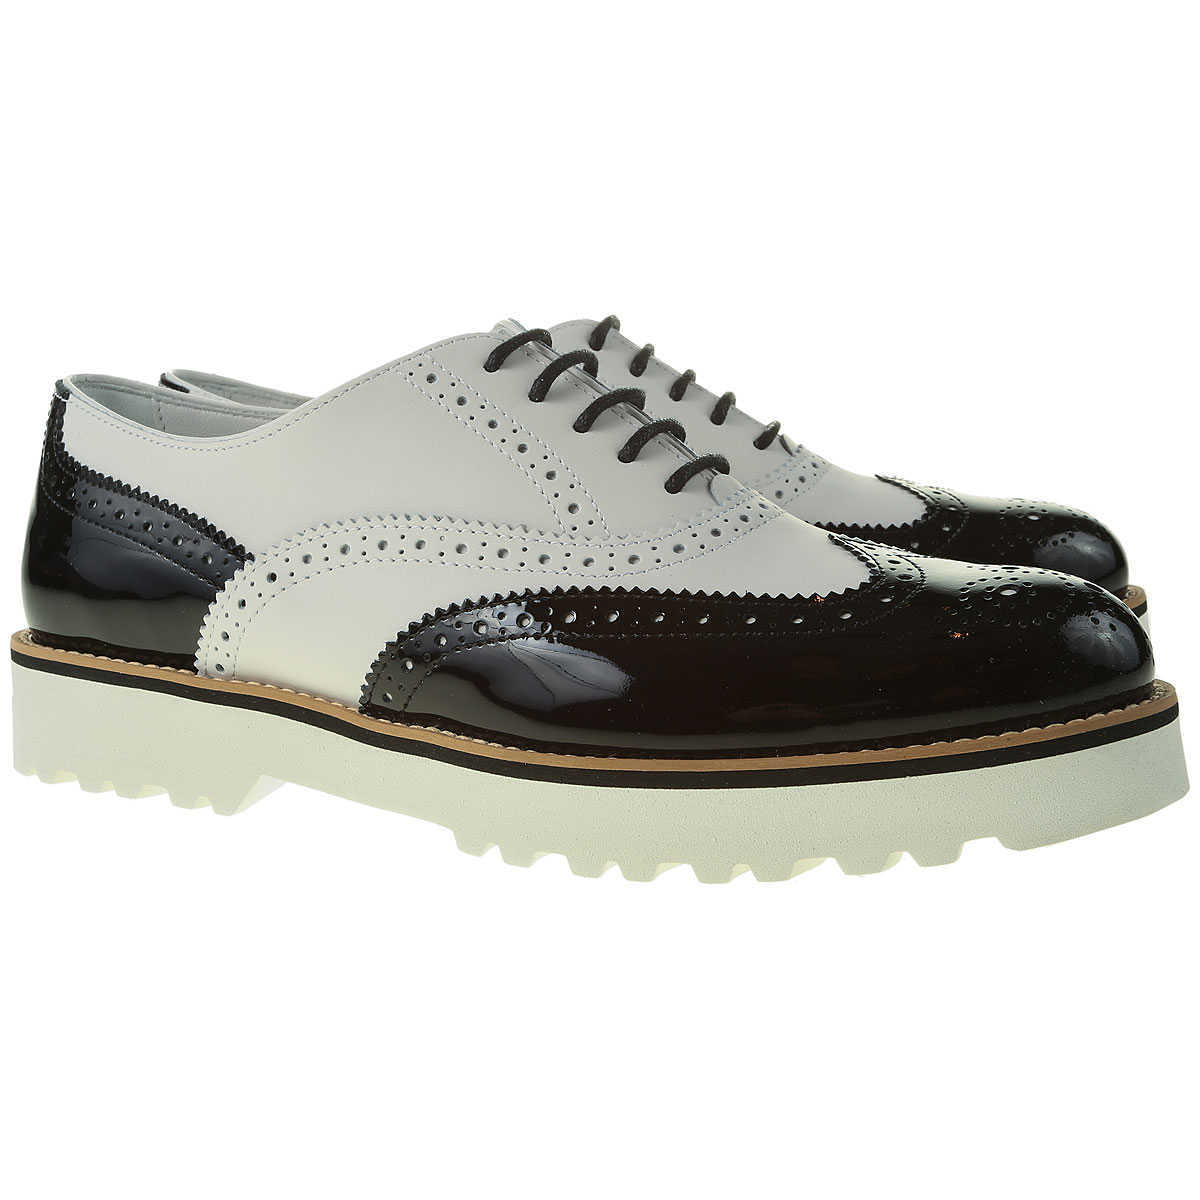 Hogan Womens Shoes On Sale in Outlet White - GOOFASH